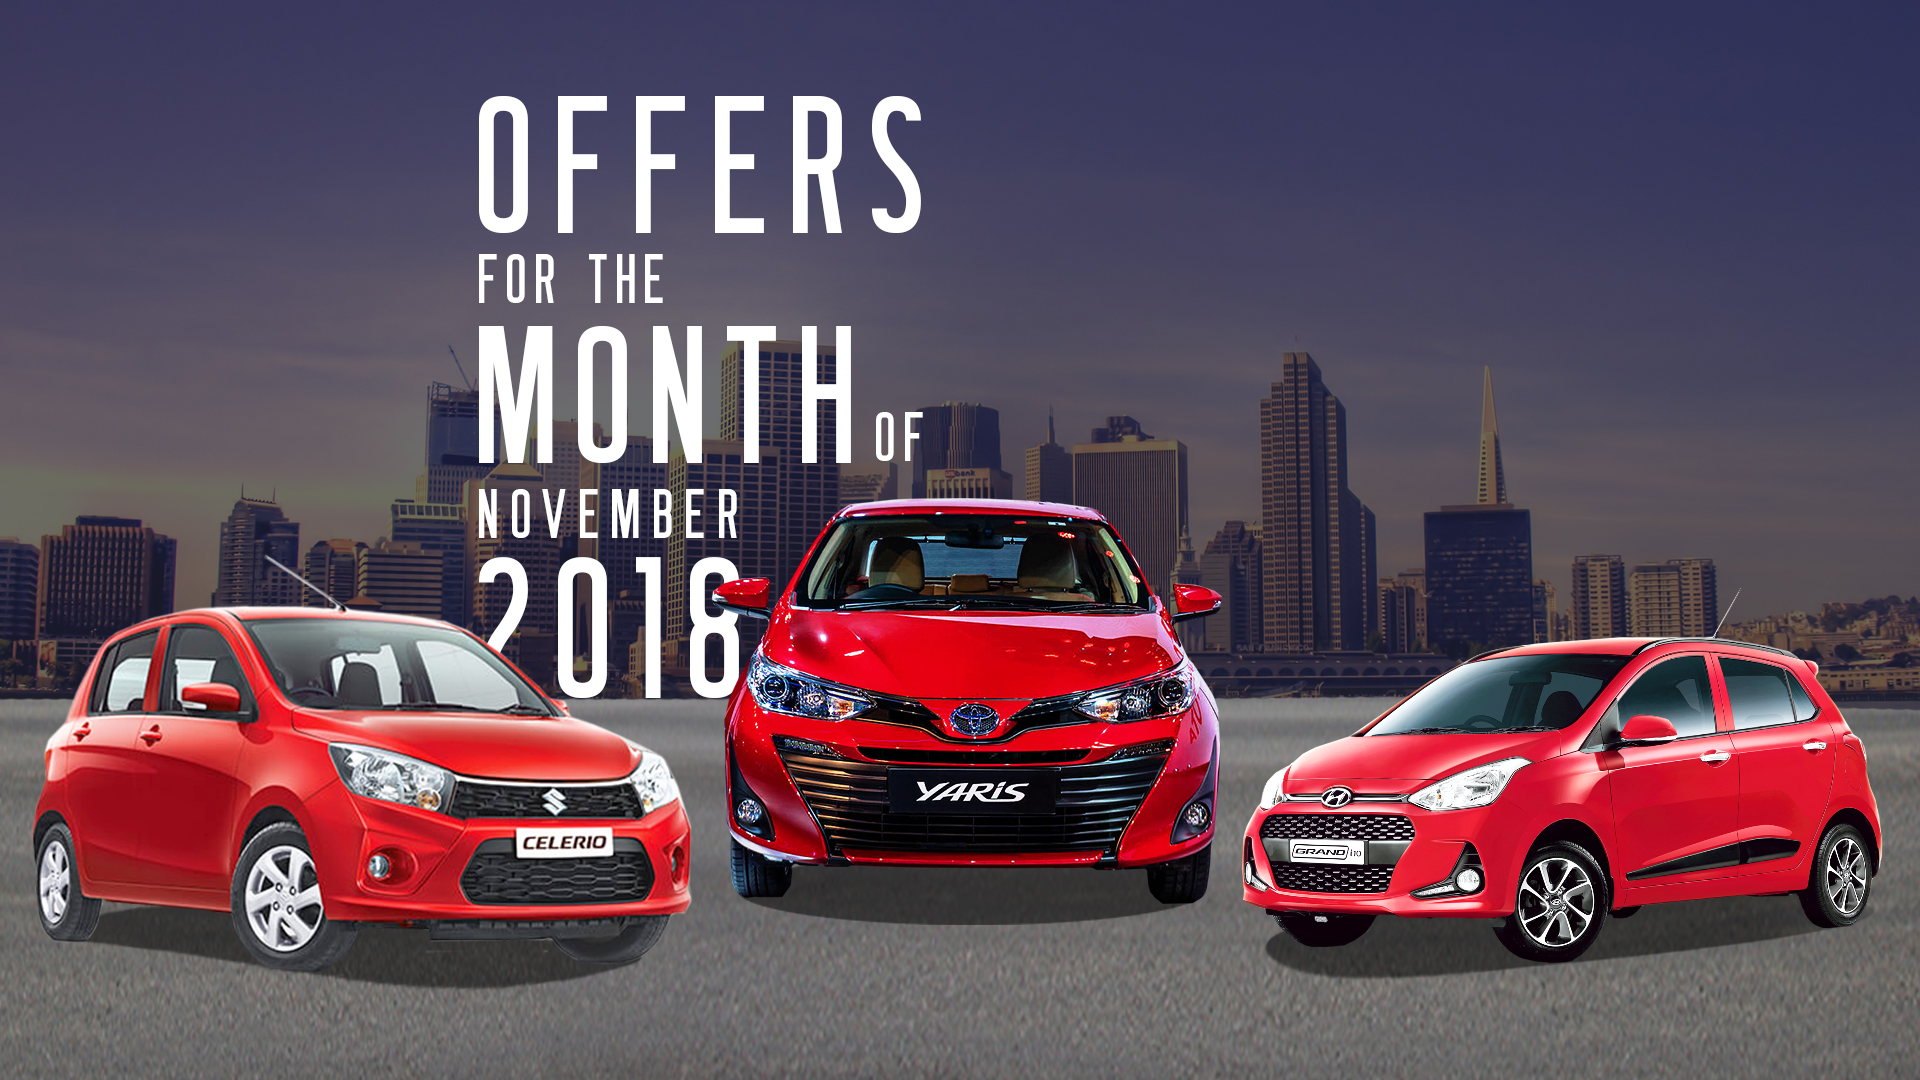 Mynewcar Exclusive - Hot Deal Offers for the Month of November 2018